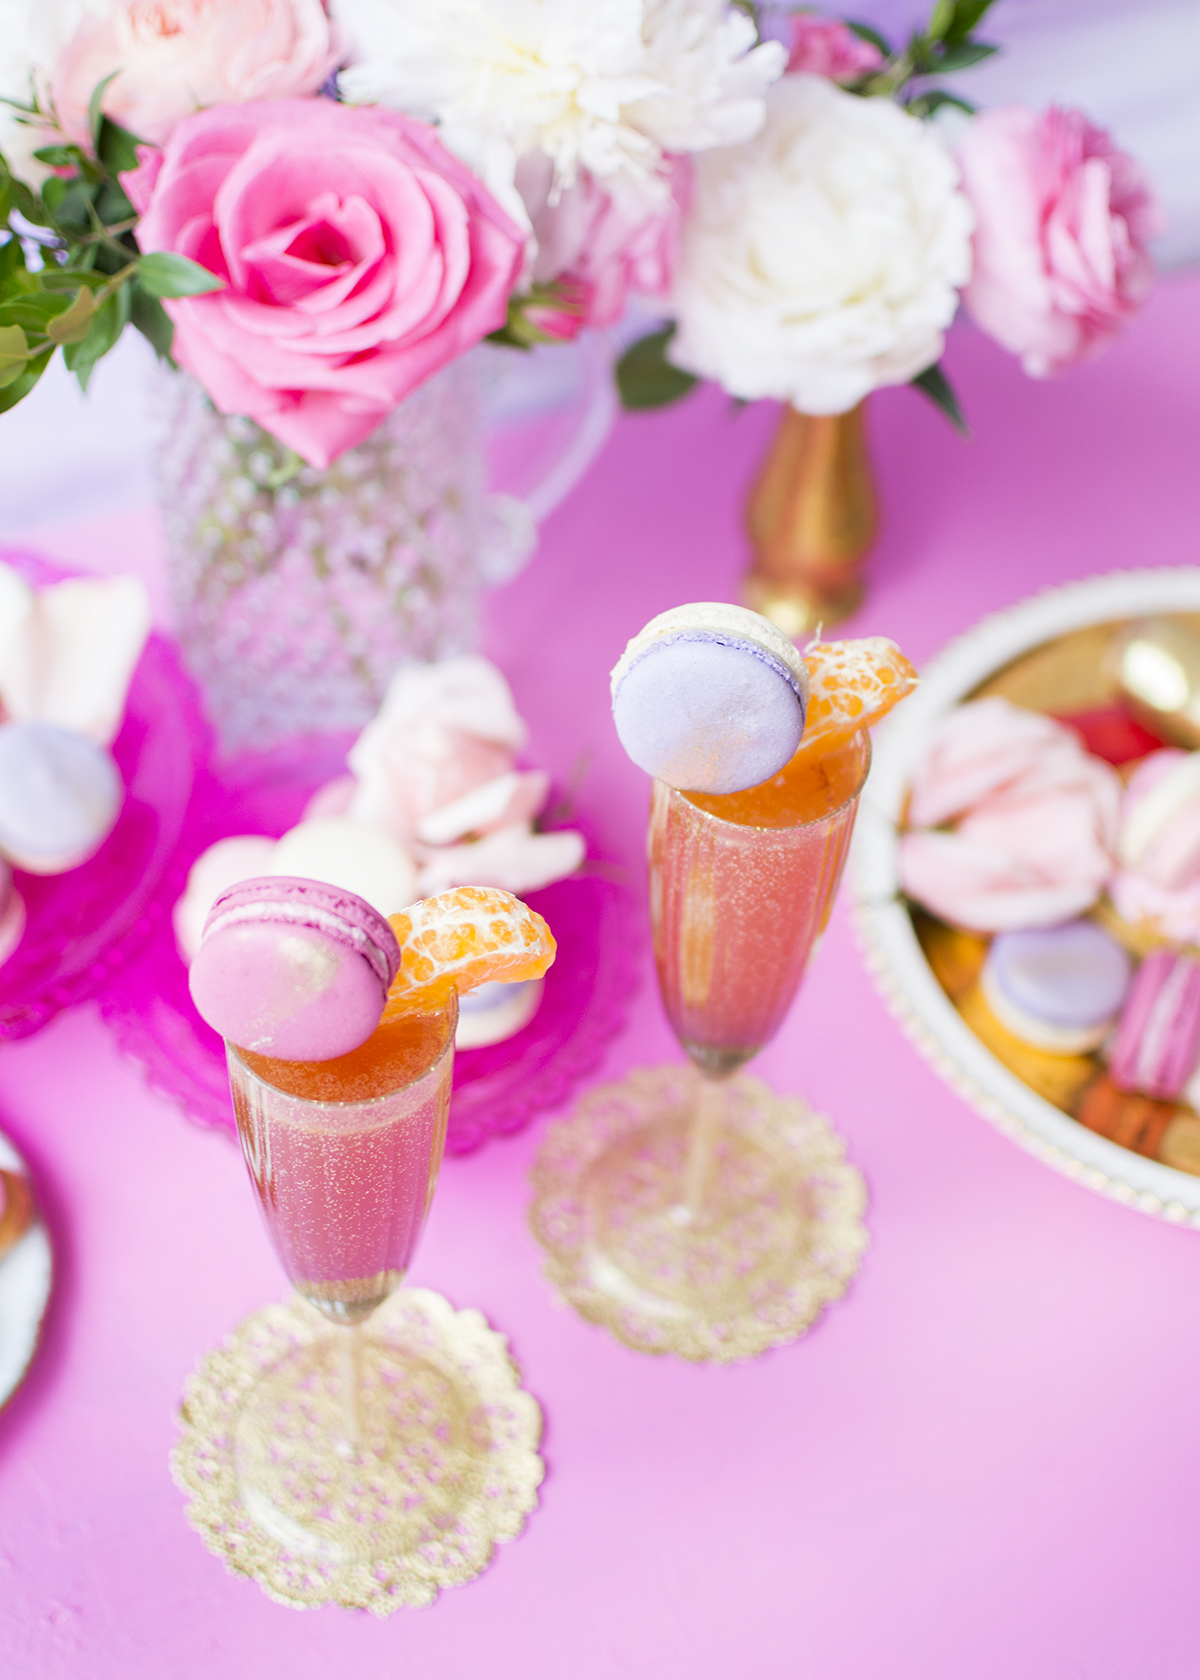 Macaron garnishes from Random Acts of Pastel